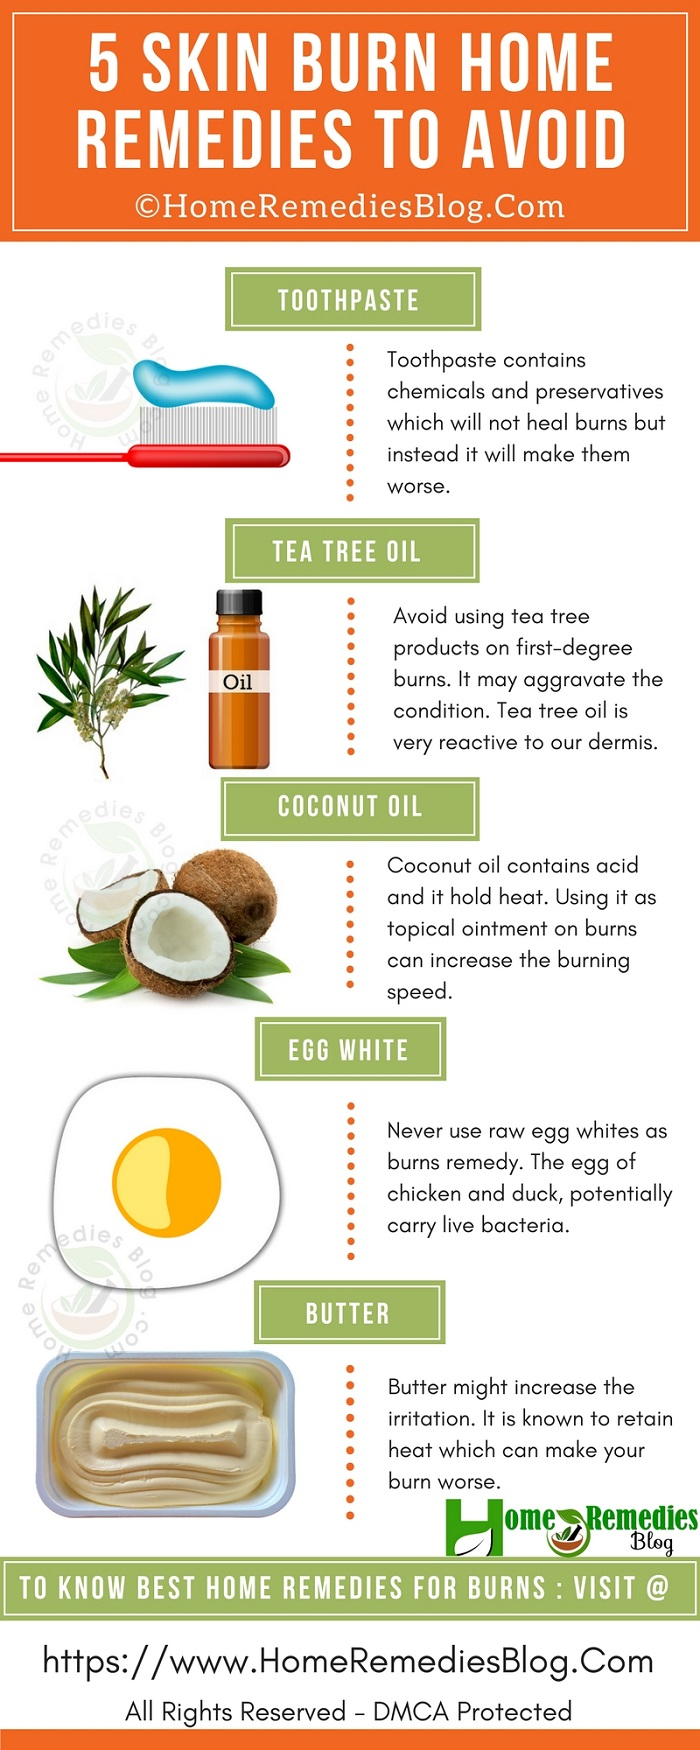 5 Home Remedies for Burns To Avoid